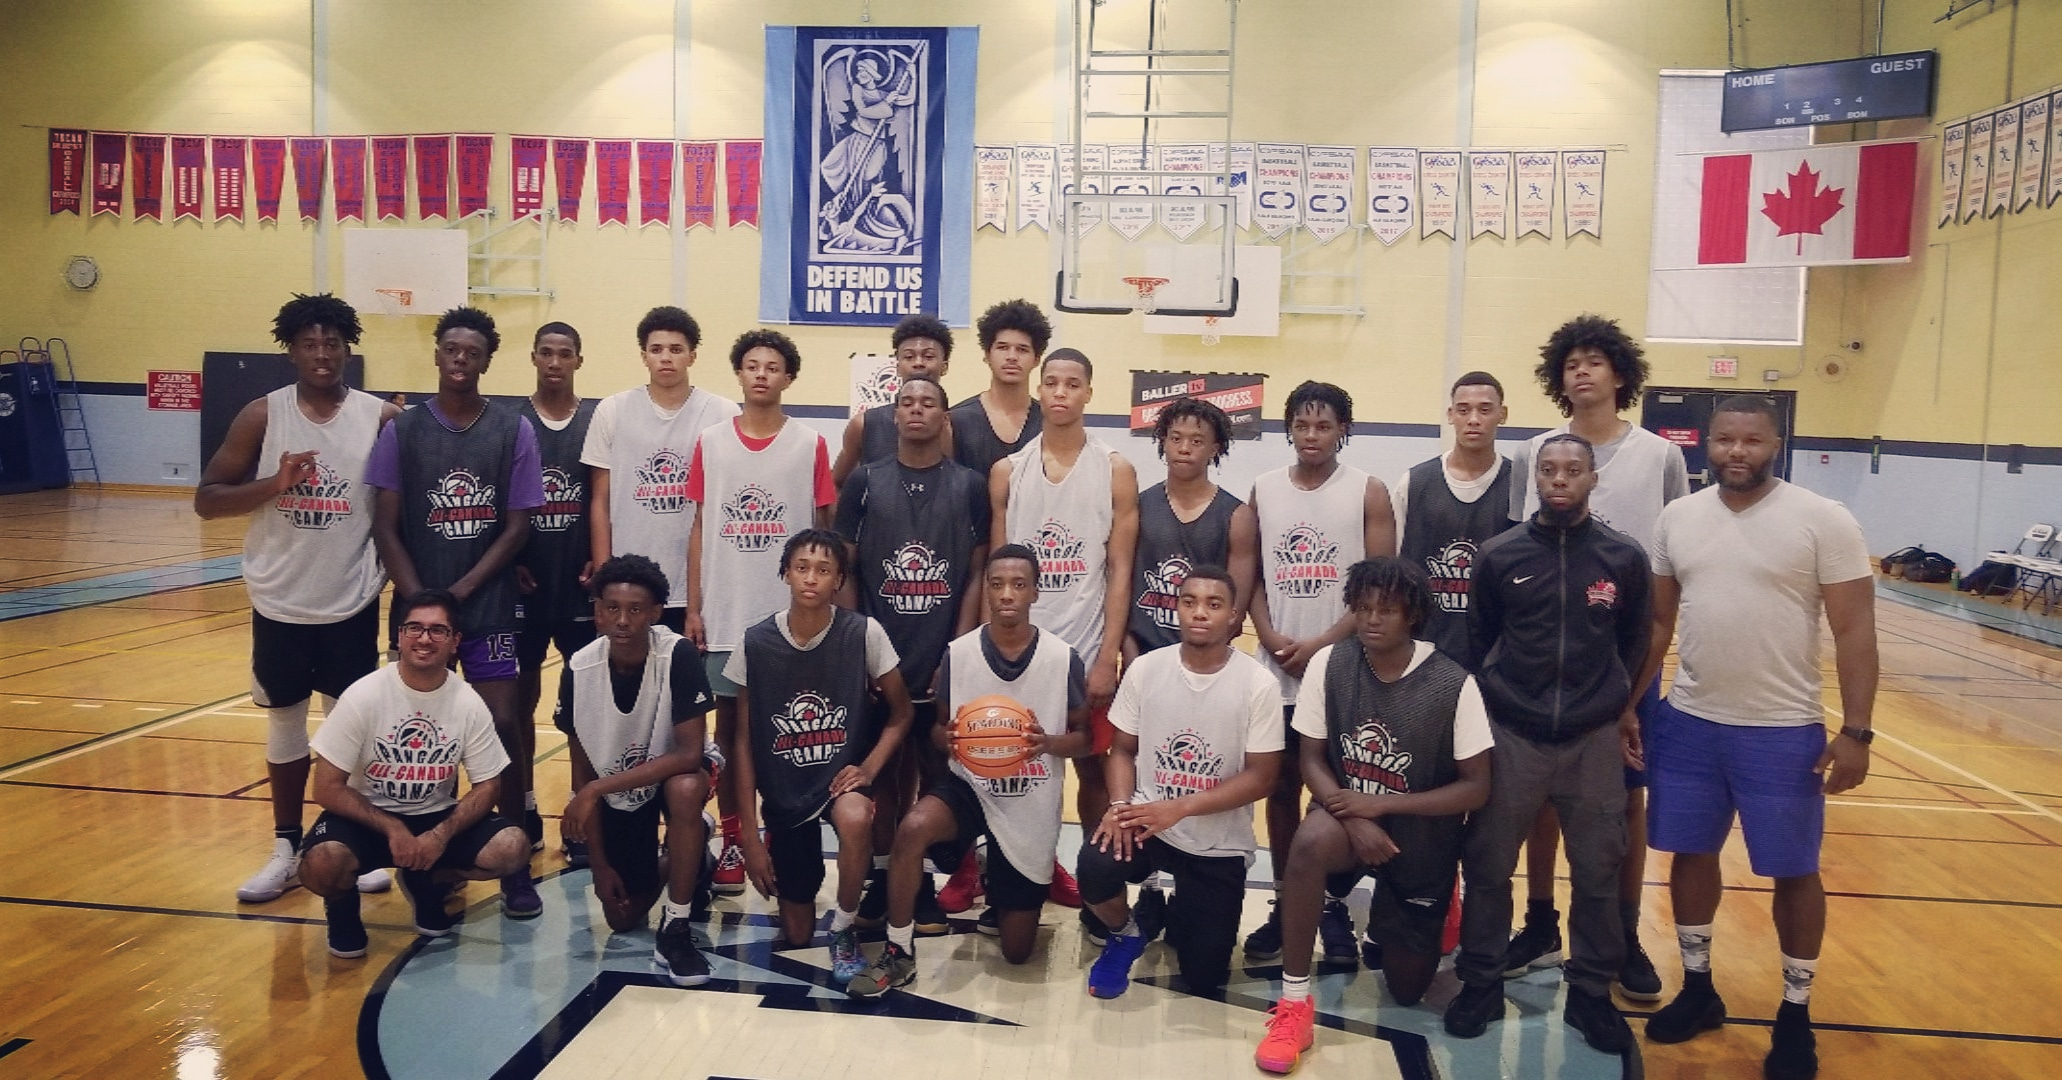 Inaugural Pangos All-Canada Camp showcased some top Canadian basketball talent